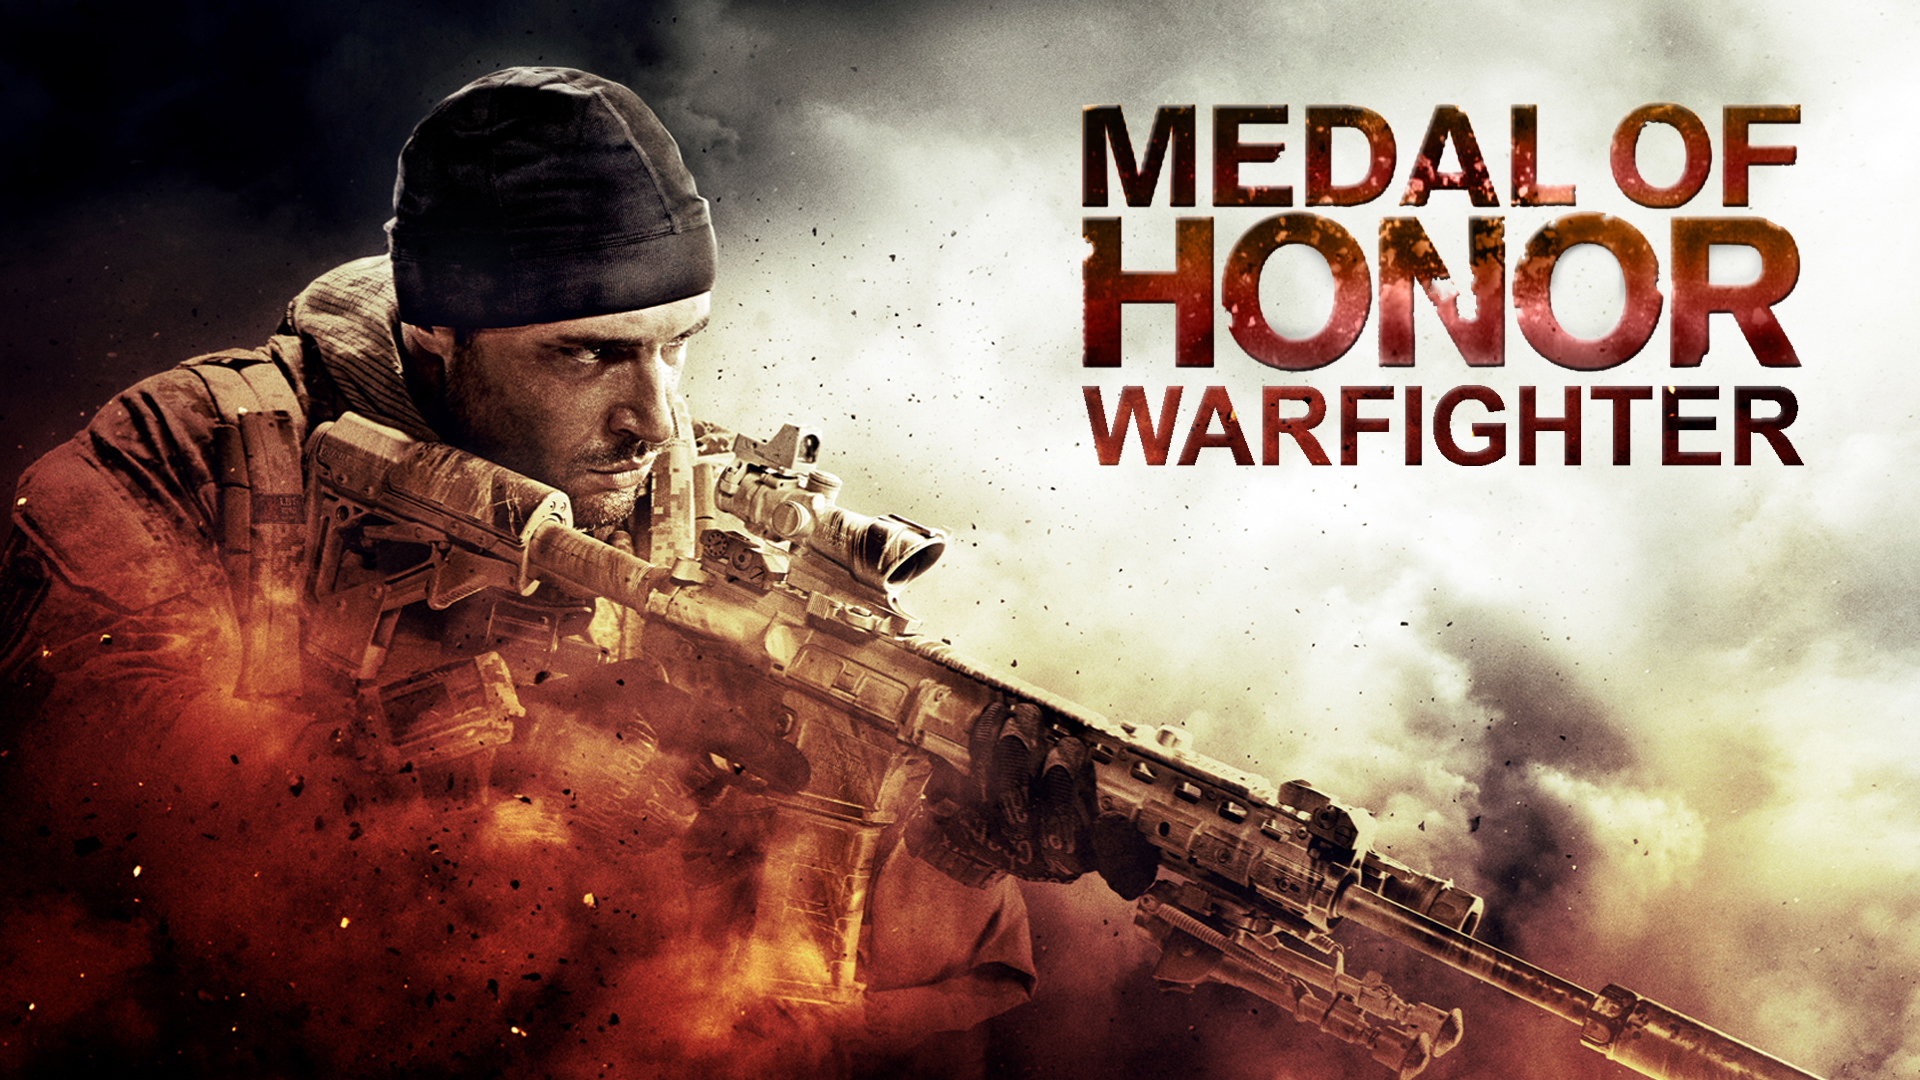 LagZero Analiza: Medal of Honor: Warfighter [Review Lineal]